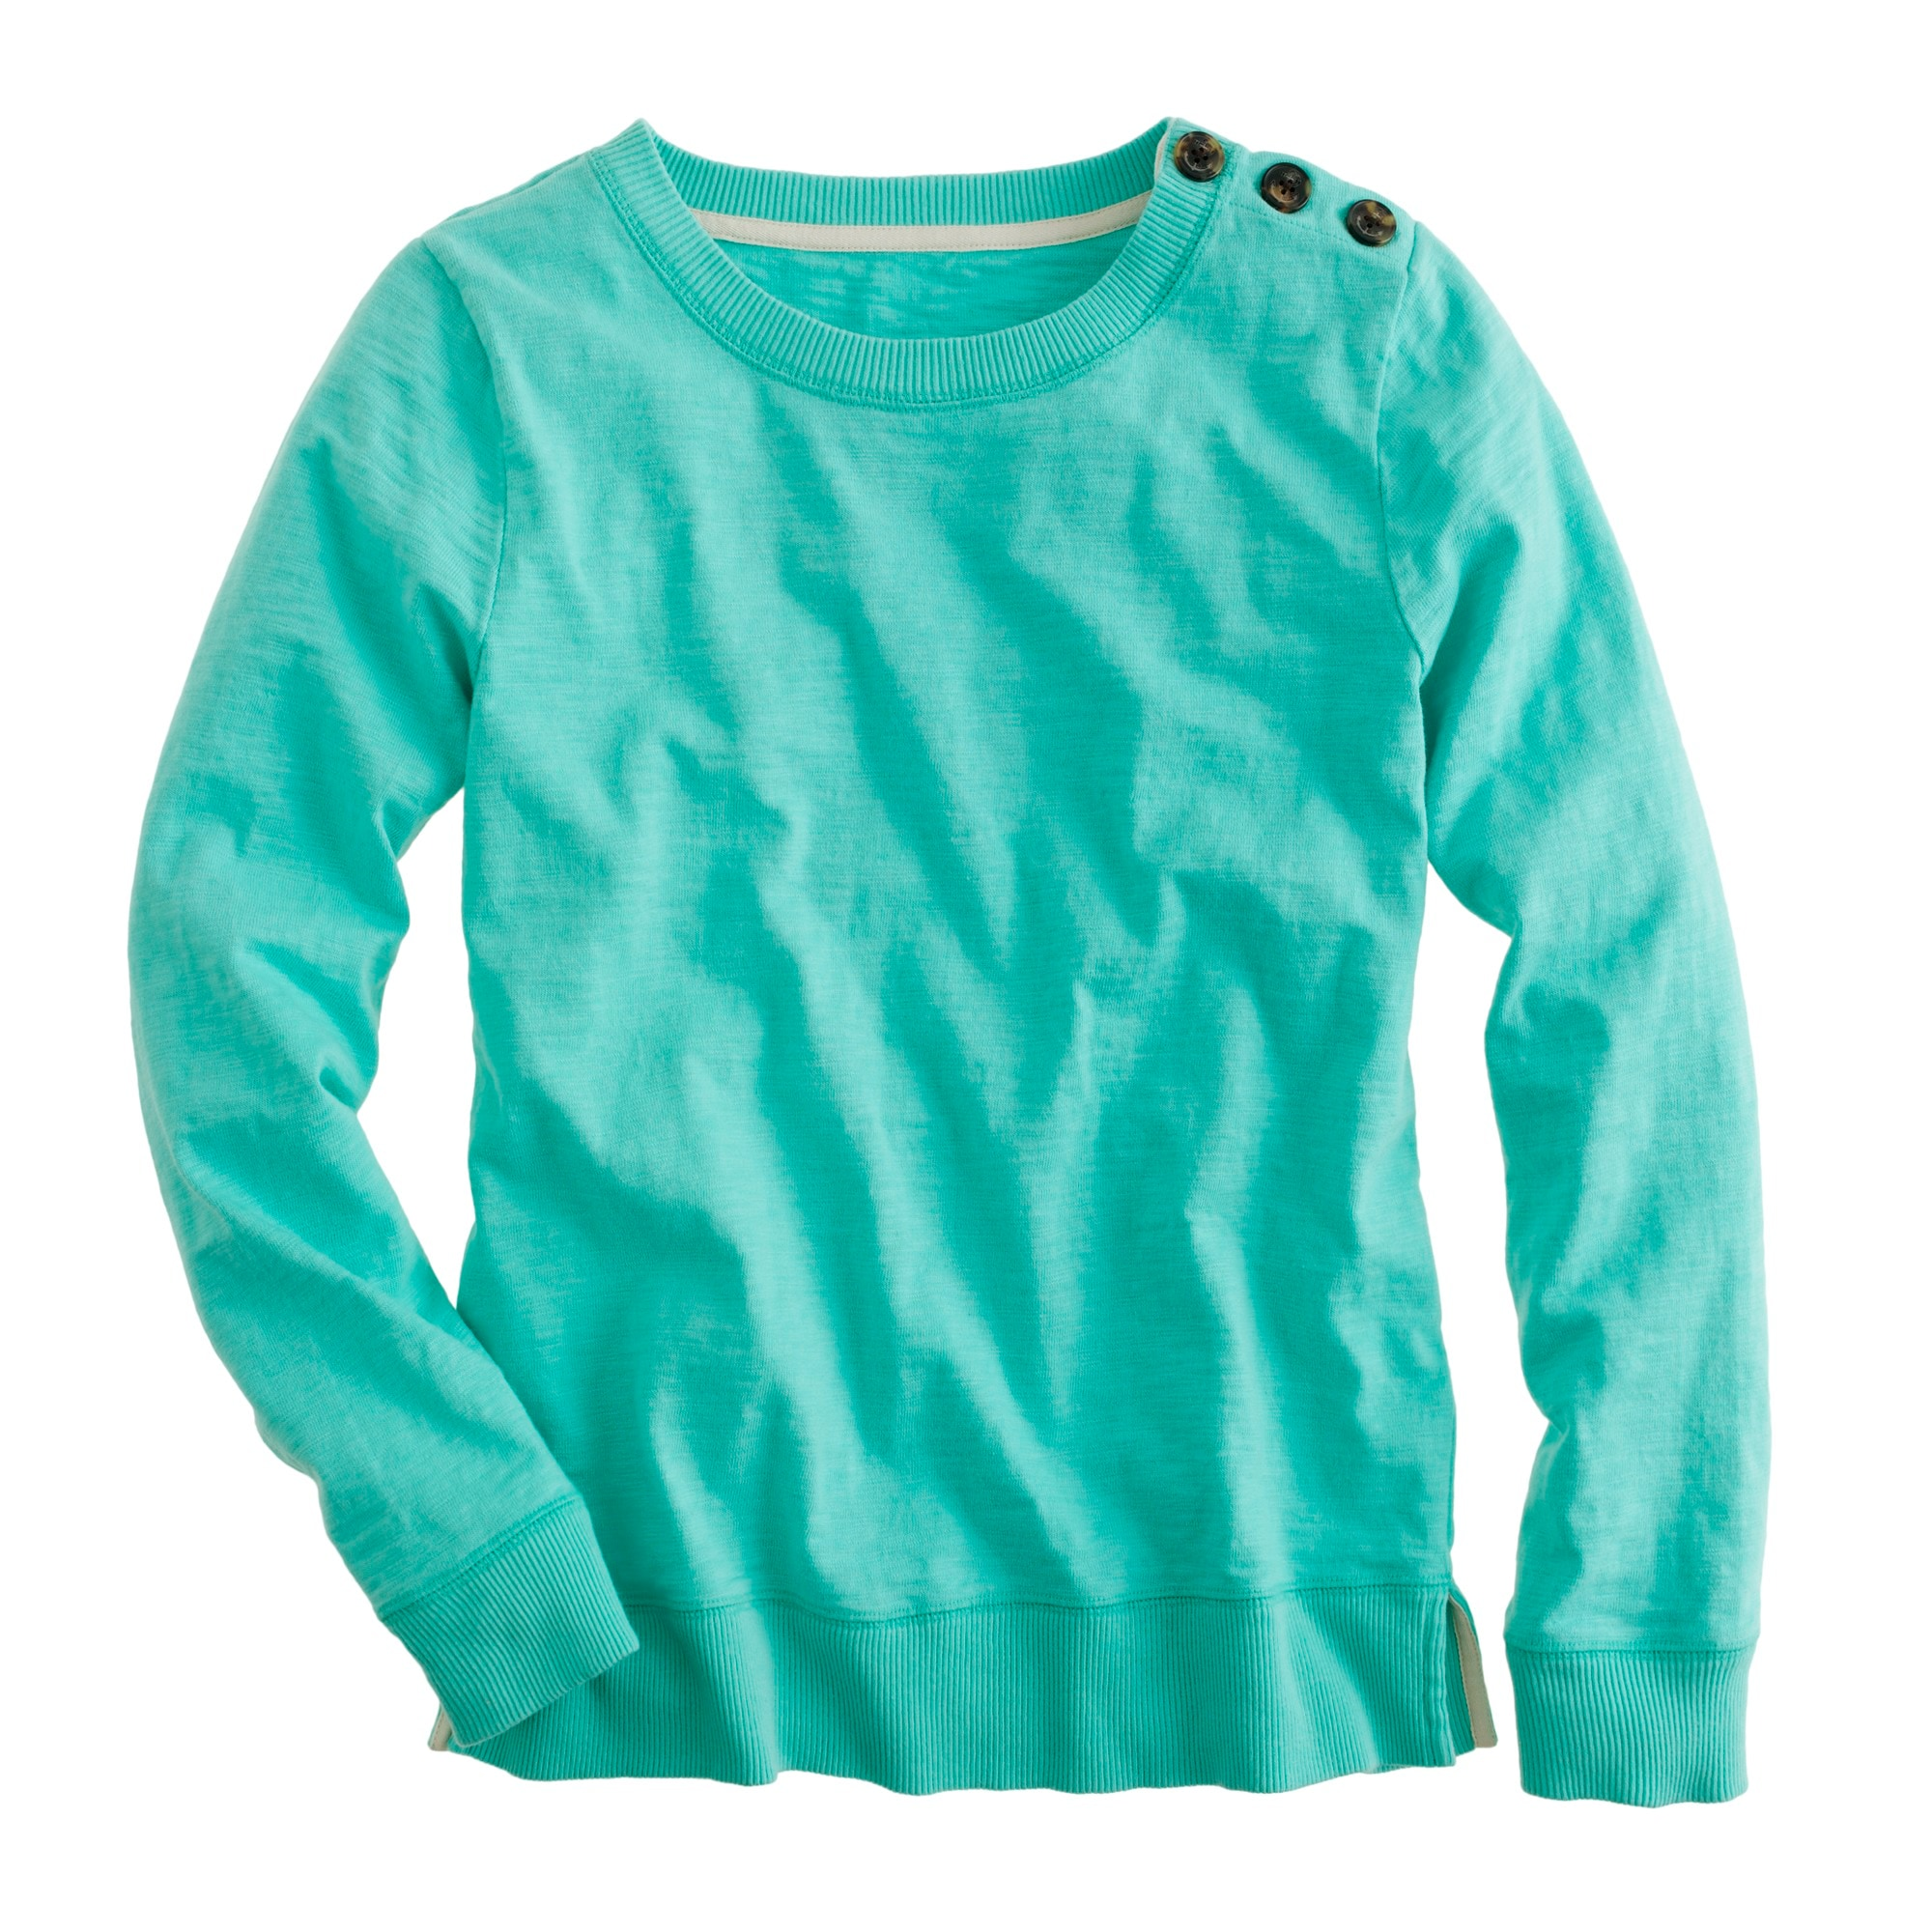 Tortoise-button sweatshirt